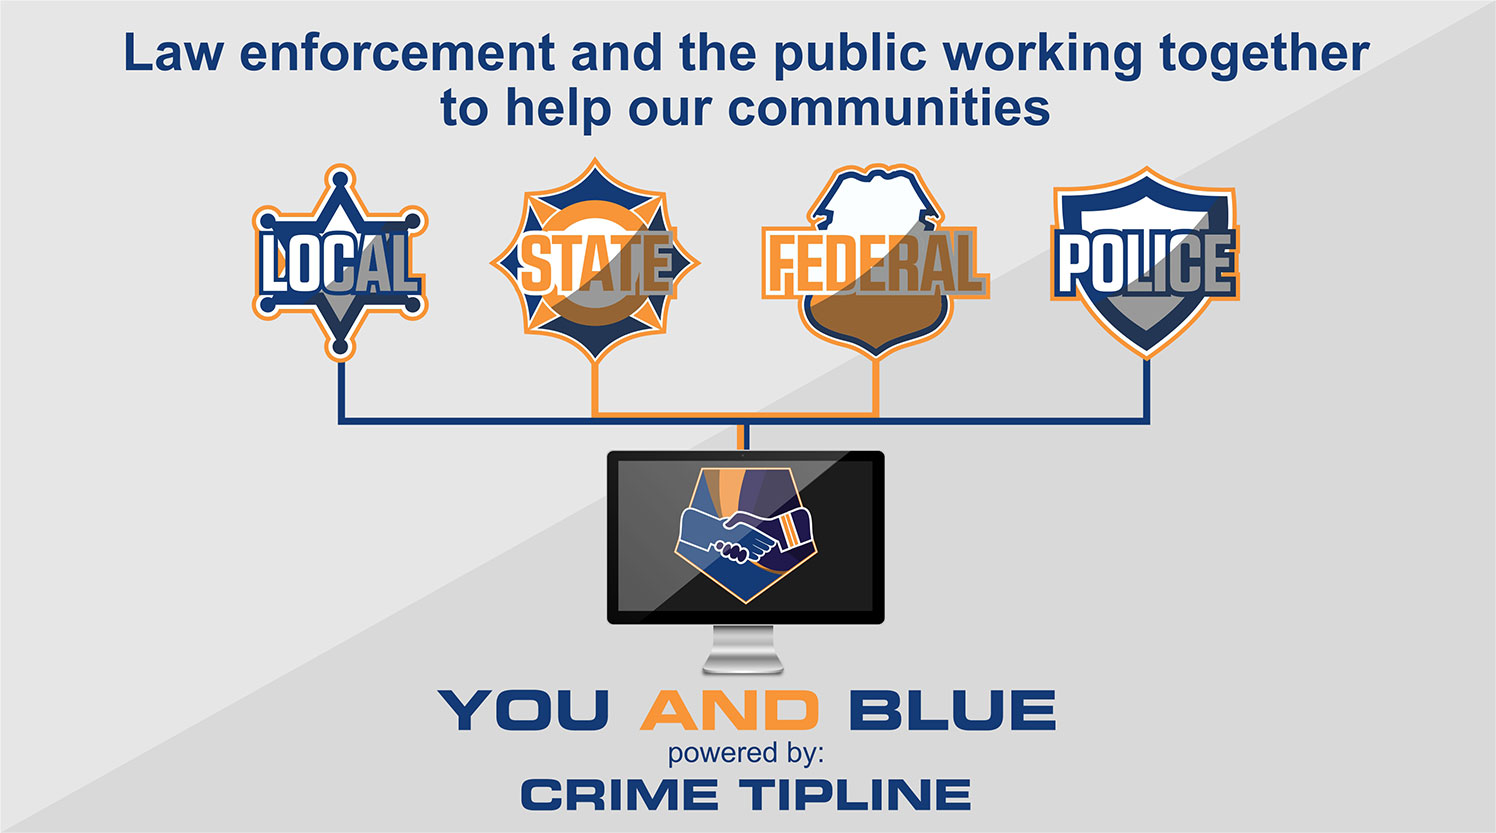 Law enforcement and the public working together to help our communities